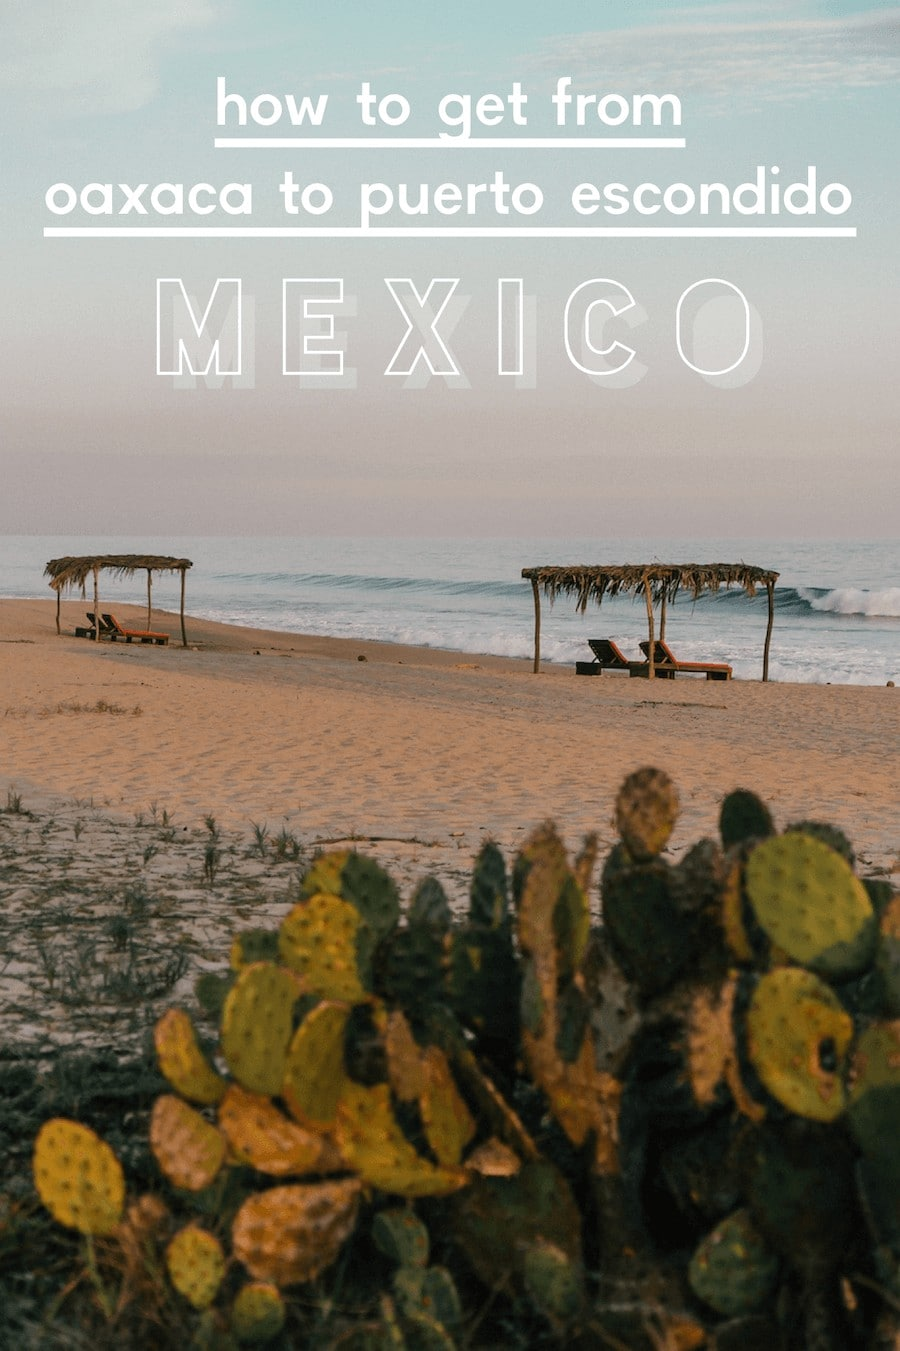 Beach in Puerto Escondido with two lounging huts and cactus in the foreground